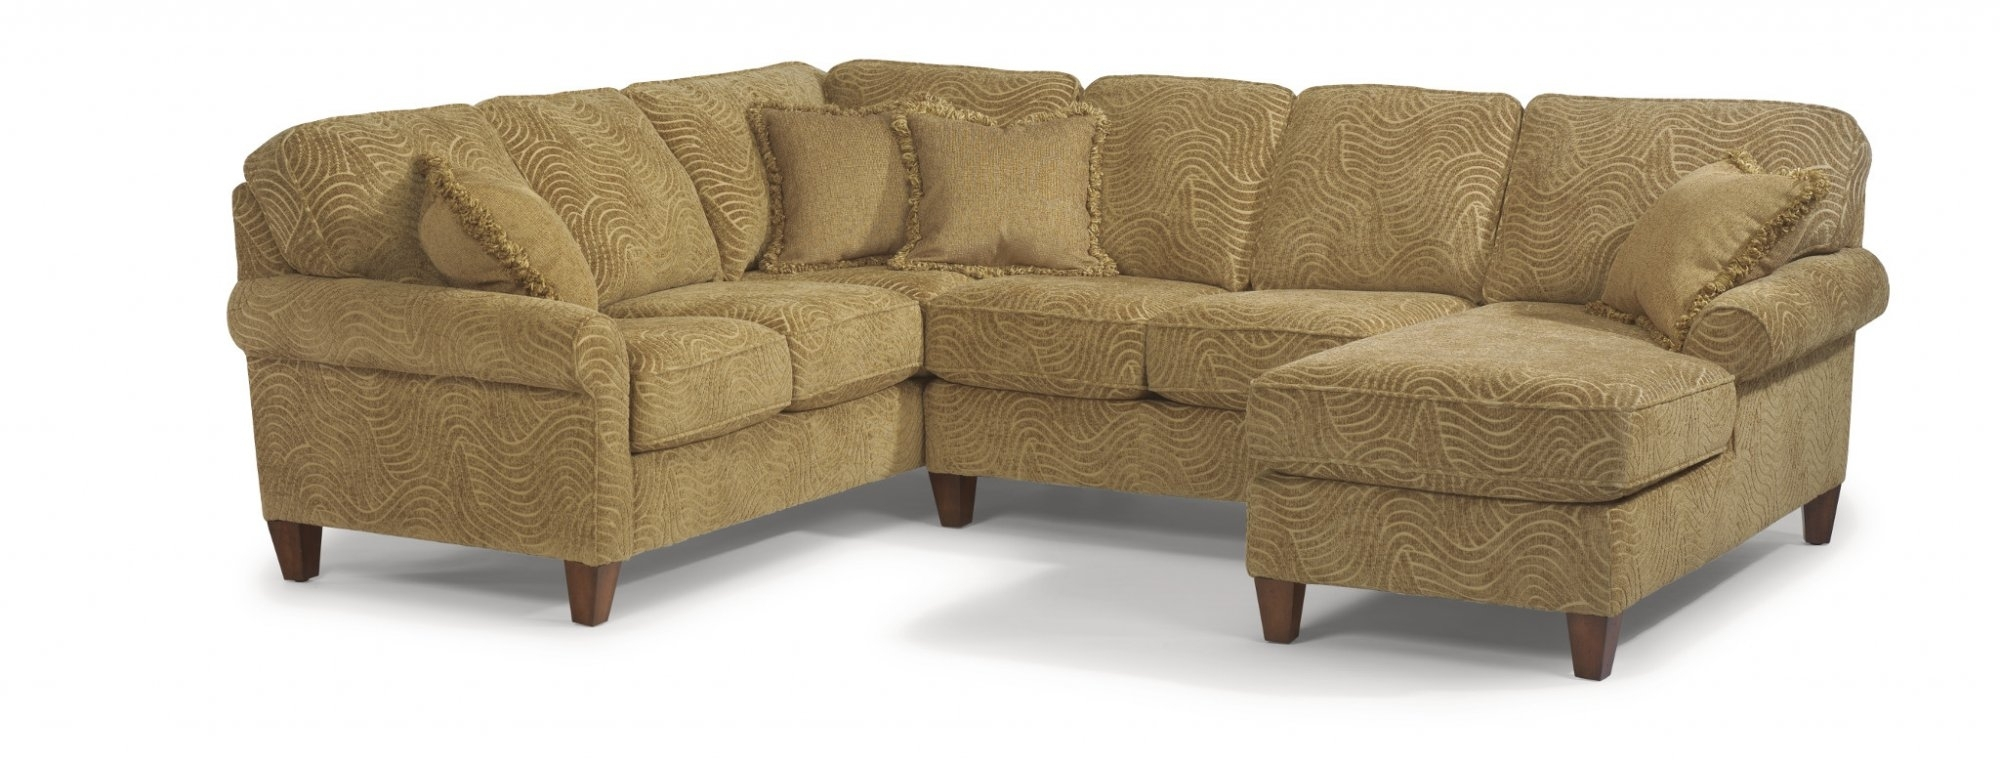 Flexsteel – Westside Sectional – Harris Family Furniture For Sectional Sofas At Bad Boy (View 11 of 15)